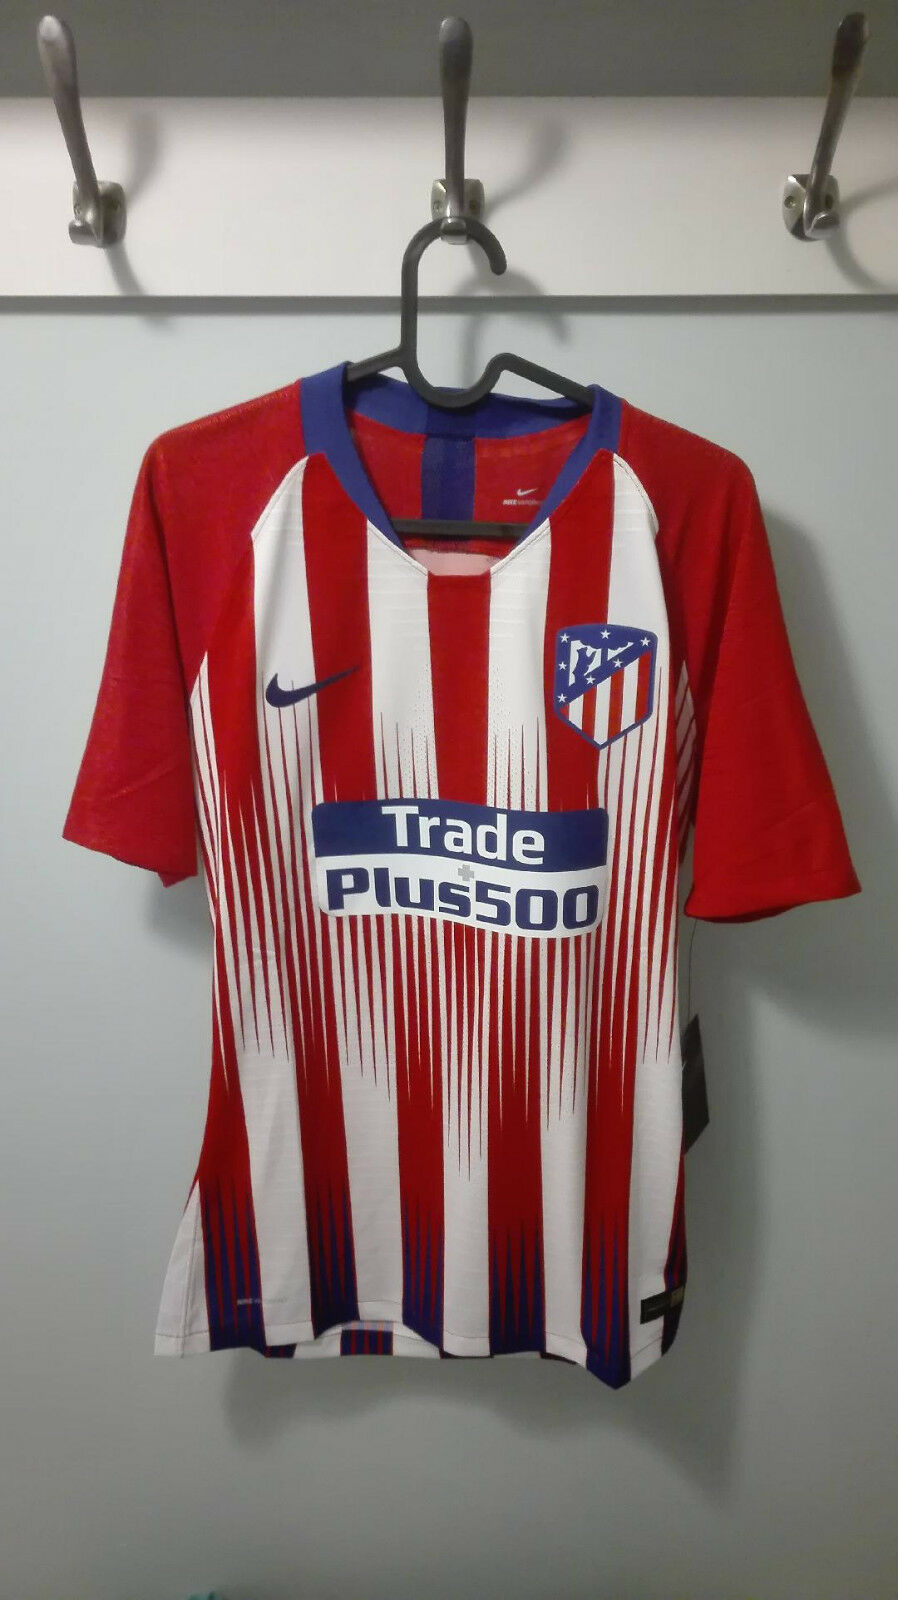 CAMISETA SHIRT ATLETICO MADRID PLAYER ISSUE MATCH UN WORN 18 19 XL + FREE SCARF